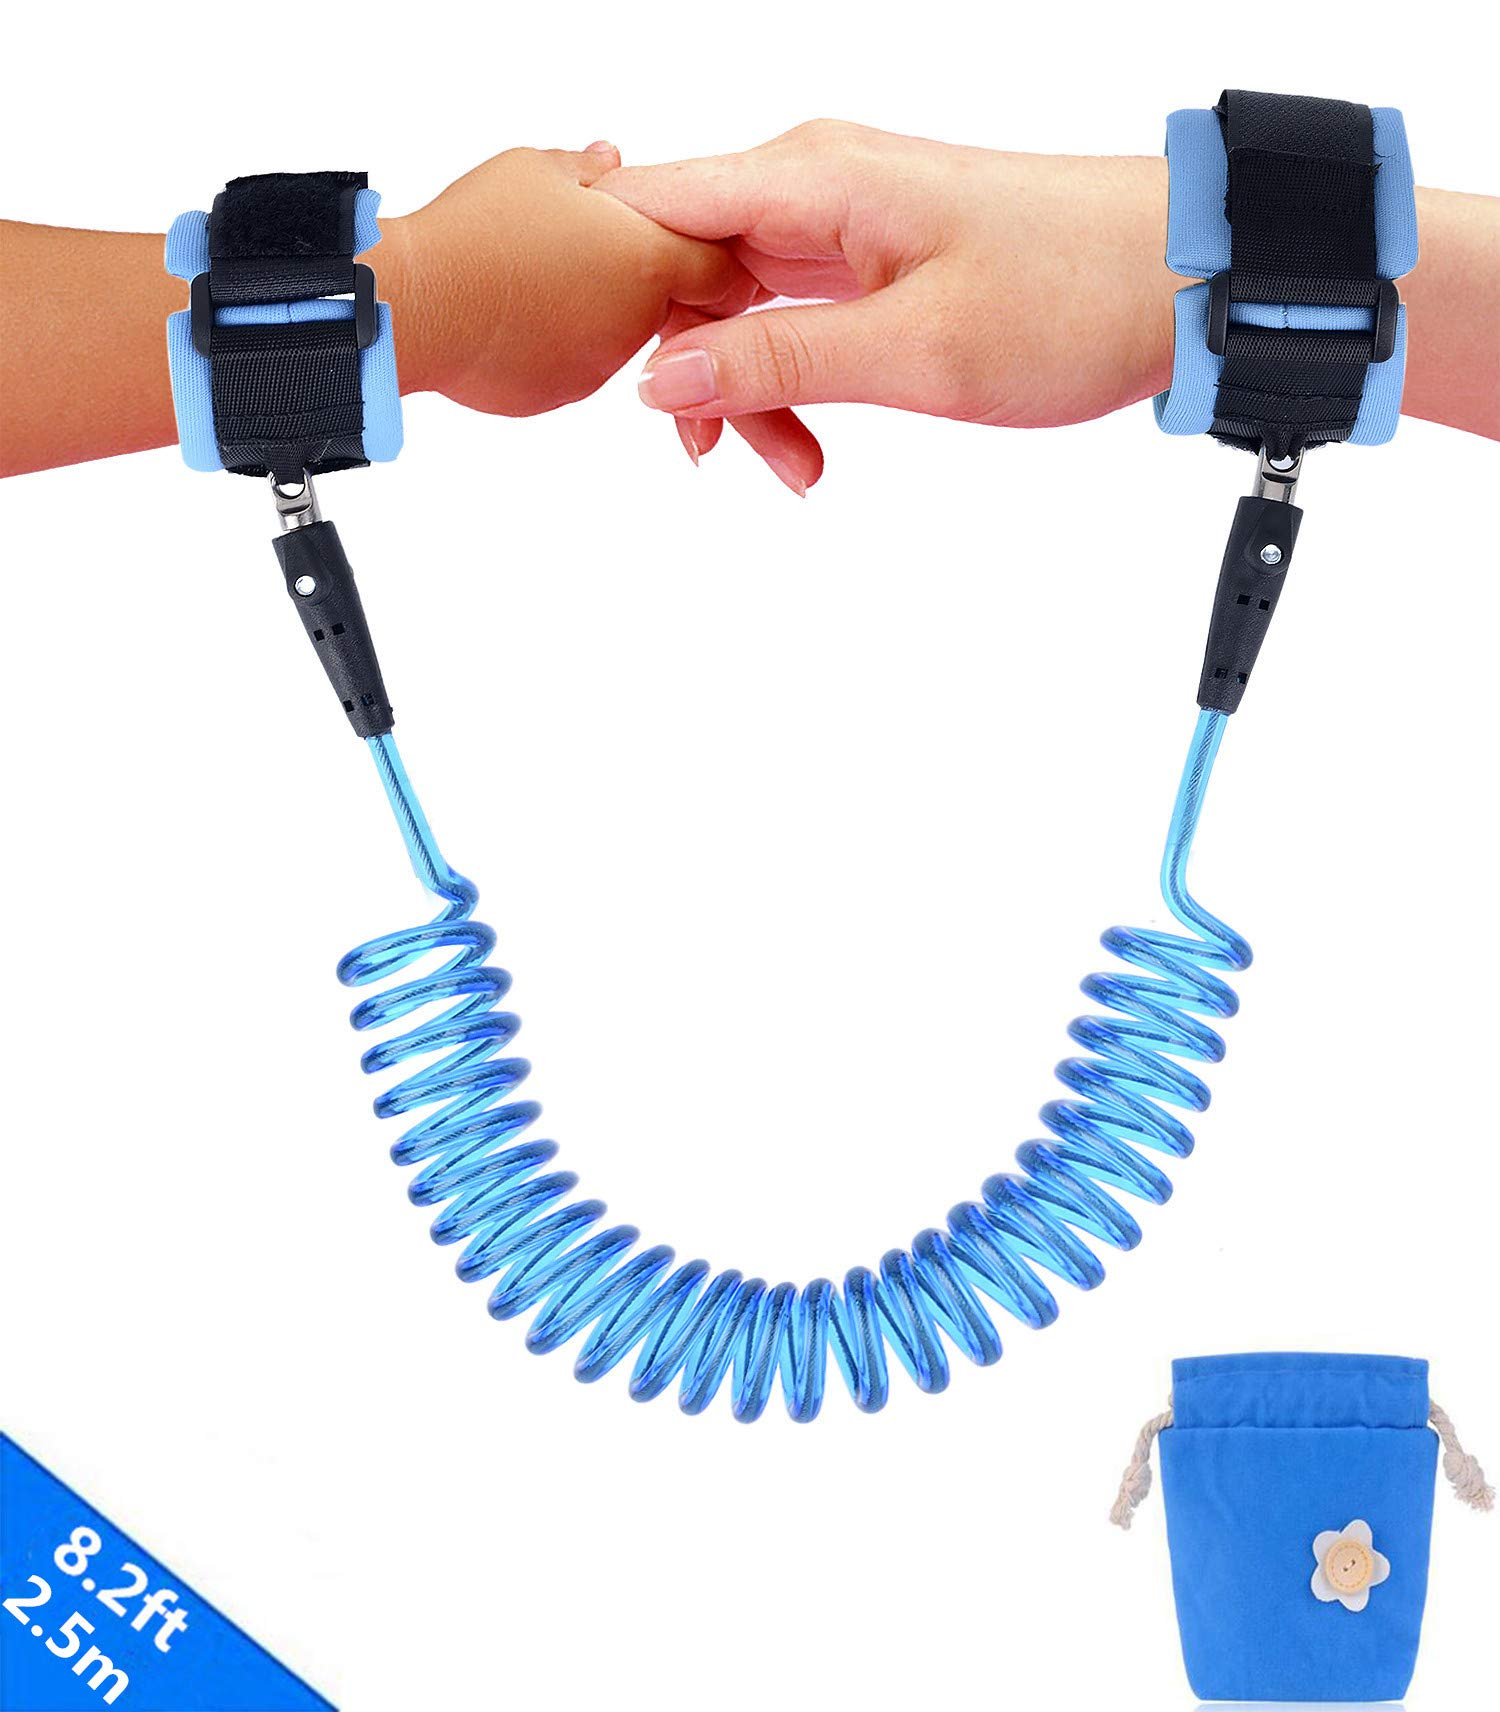 Emwel Anti Lost Wrist Link Belt, 2.5M/ 98Inch Baby Toddler Reins Safety Leash Wristband Walking Hand Belt Harness Security Elastic Wire Rope, Children Kids Travel Cares Safety Restraint (Blue) Emwel It includes a 2.5M /98inch anti lost link with 360 degree rotatable stainless metal buckle and a soft skin-friendly wrist band. Keep toddlers close, it gives toddlers independence but keeps them safe at the same time. Suitable for looking after toddlers, keep them close without watching them tightly. Eco-friendly buckle makes children feel at ease to play around, the breathable cotton materials can be used by your kids with no worries. Easy to use, Wrist straps are soft, Anti-pricking, Can Adjust size, comfortable for parent and childs. 1